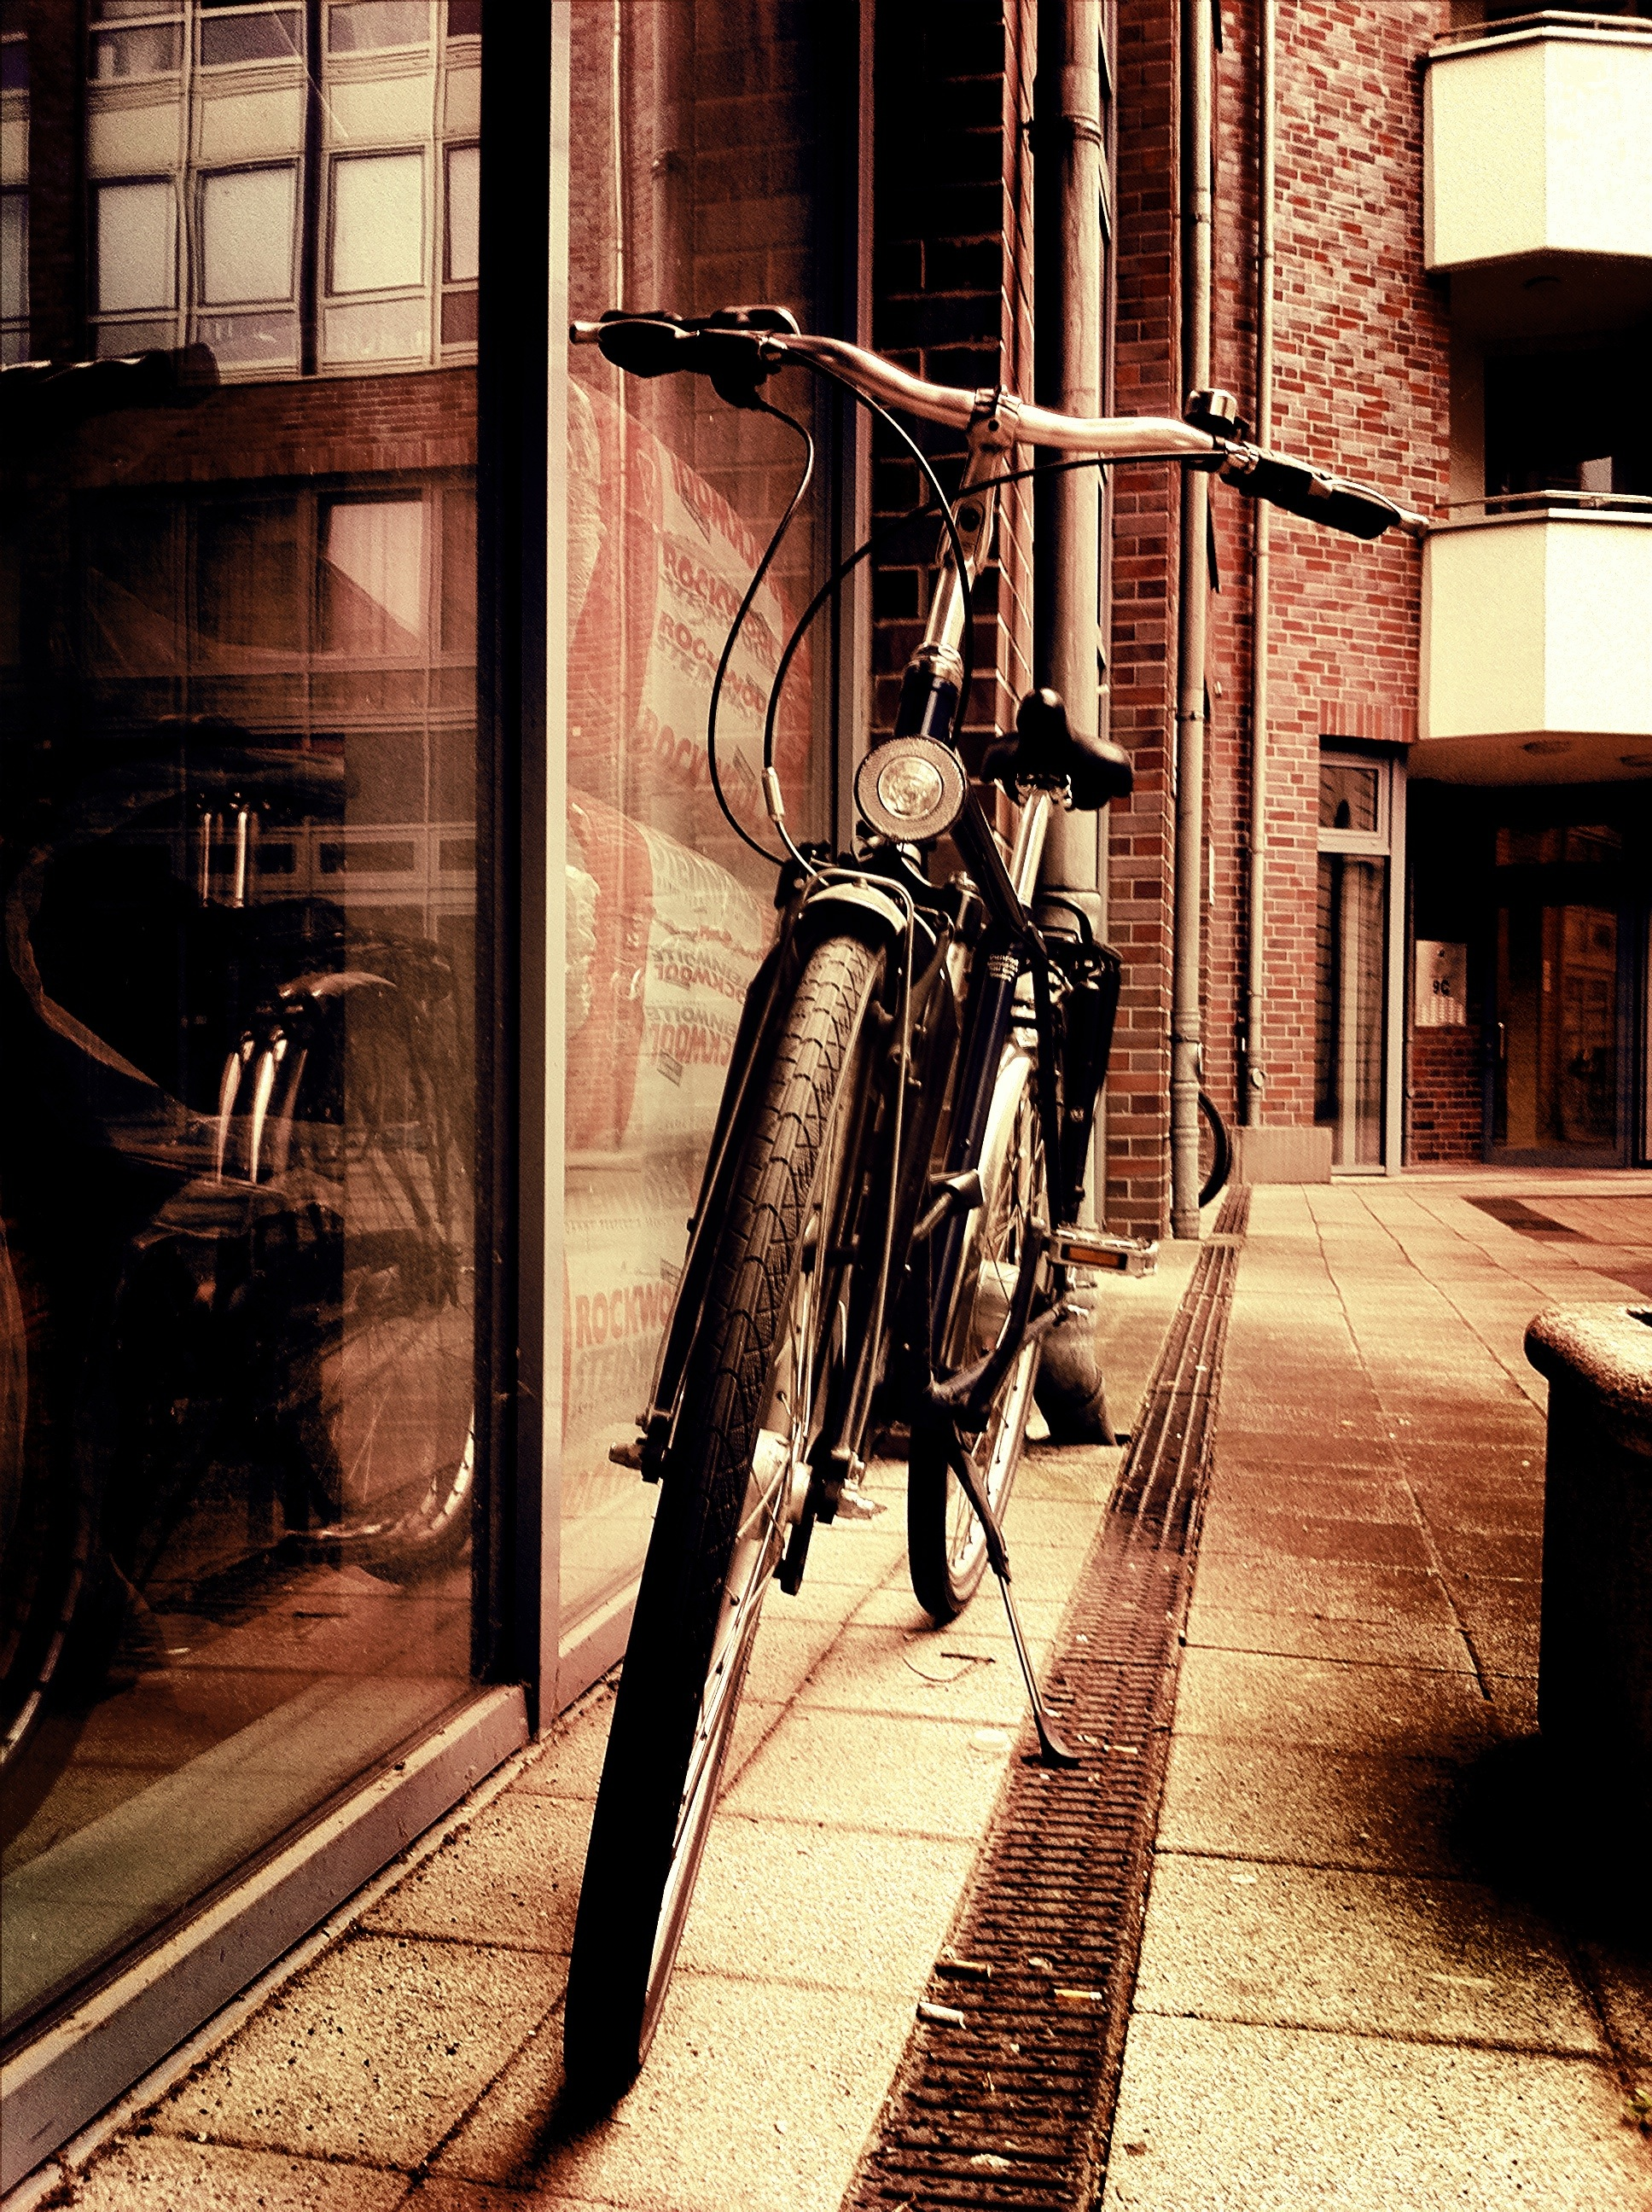 A photograph of one of many bicycles in Berlin.